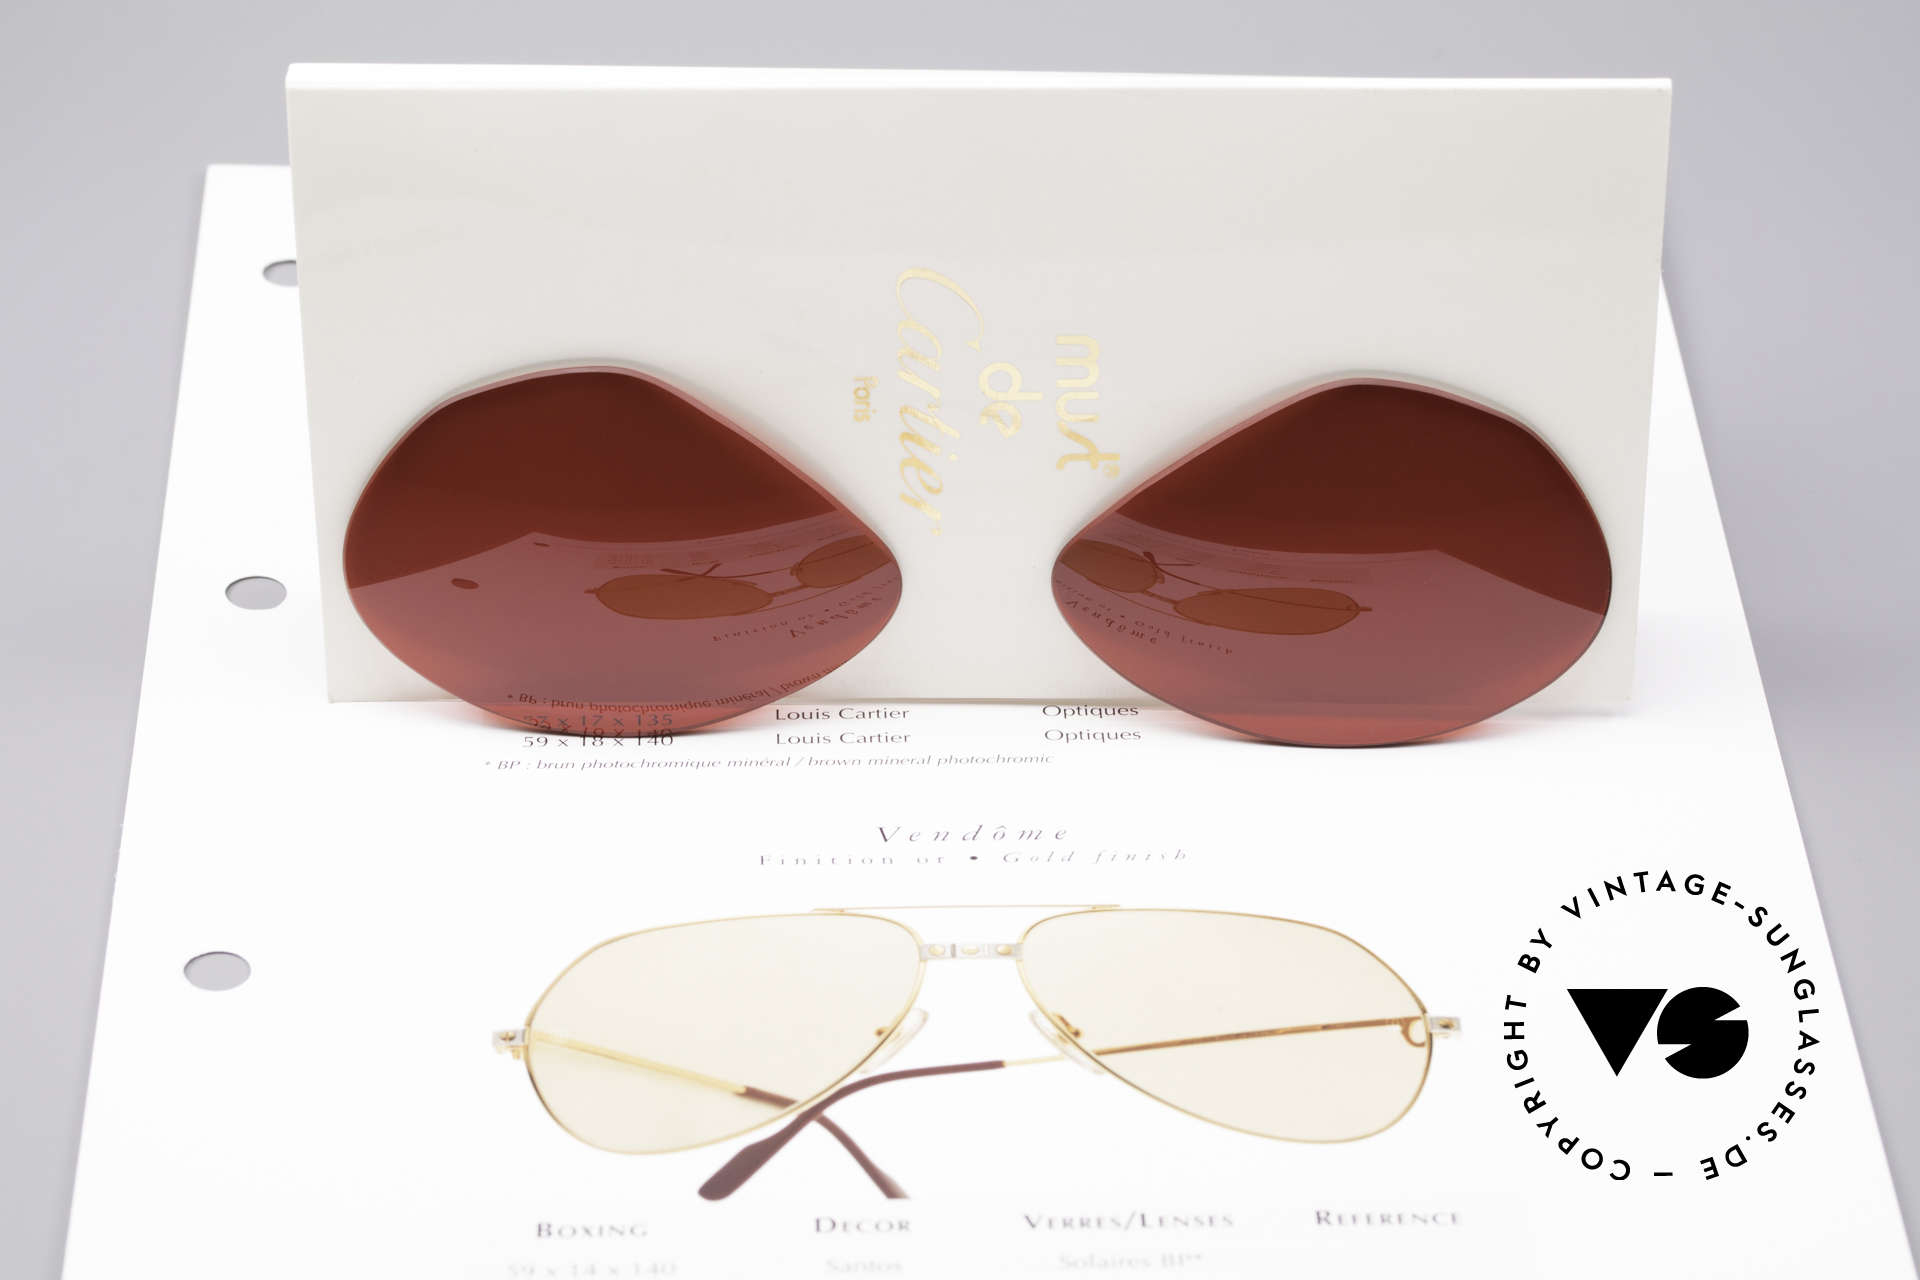 Cartier Vendome Lenses - L Sun Lenses 3D Red, gaudy 3D red tint / color = NOT qualified FOR DRIVING!!, Made for Men